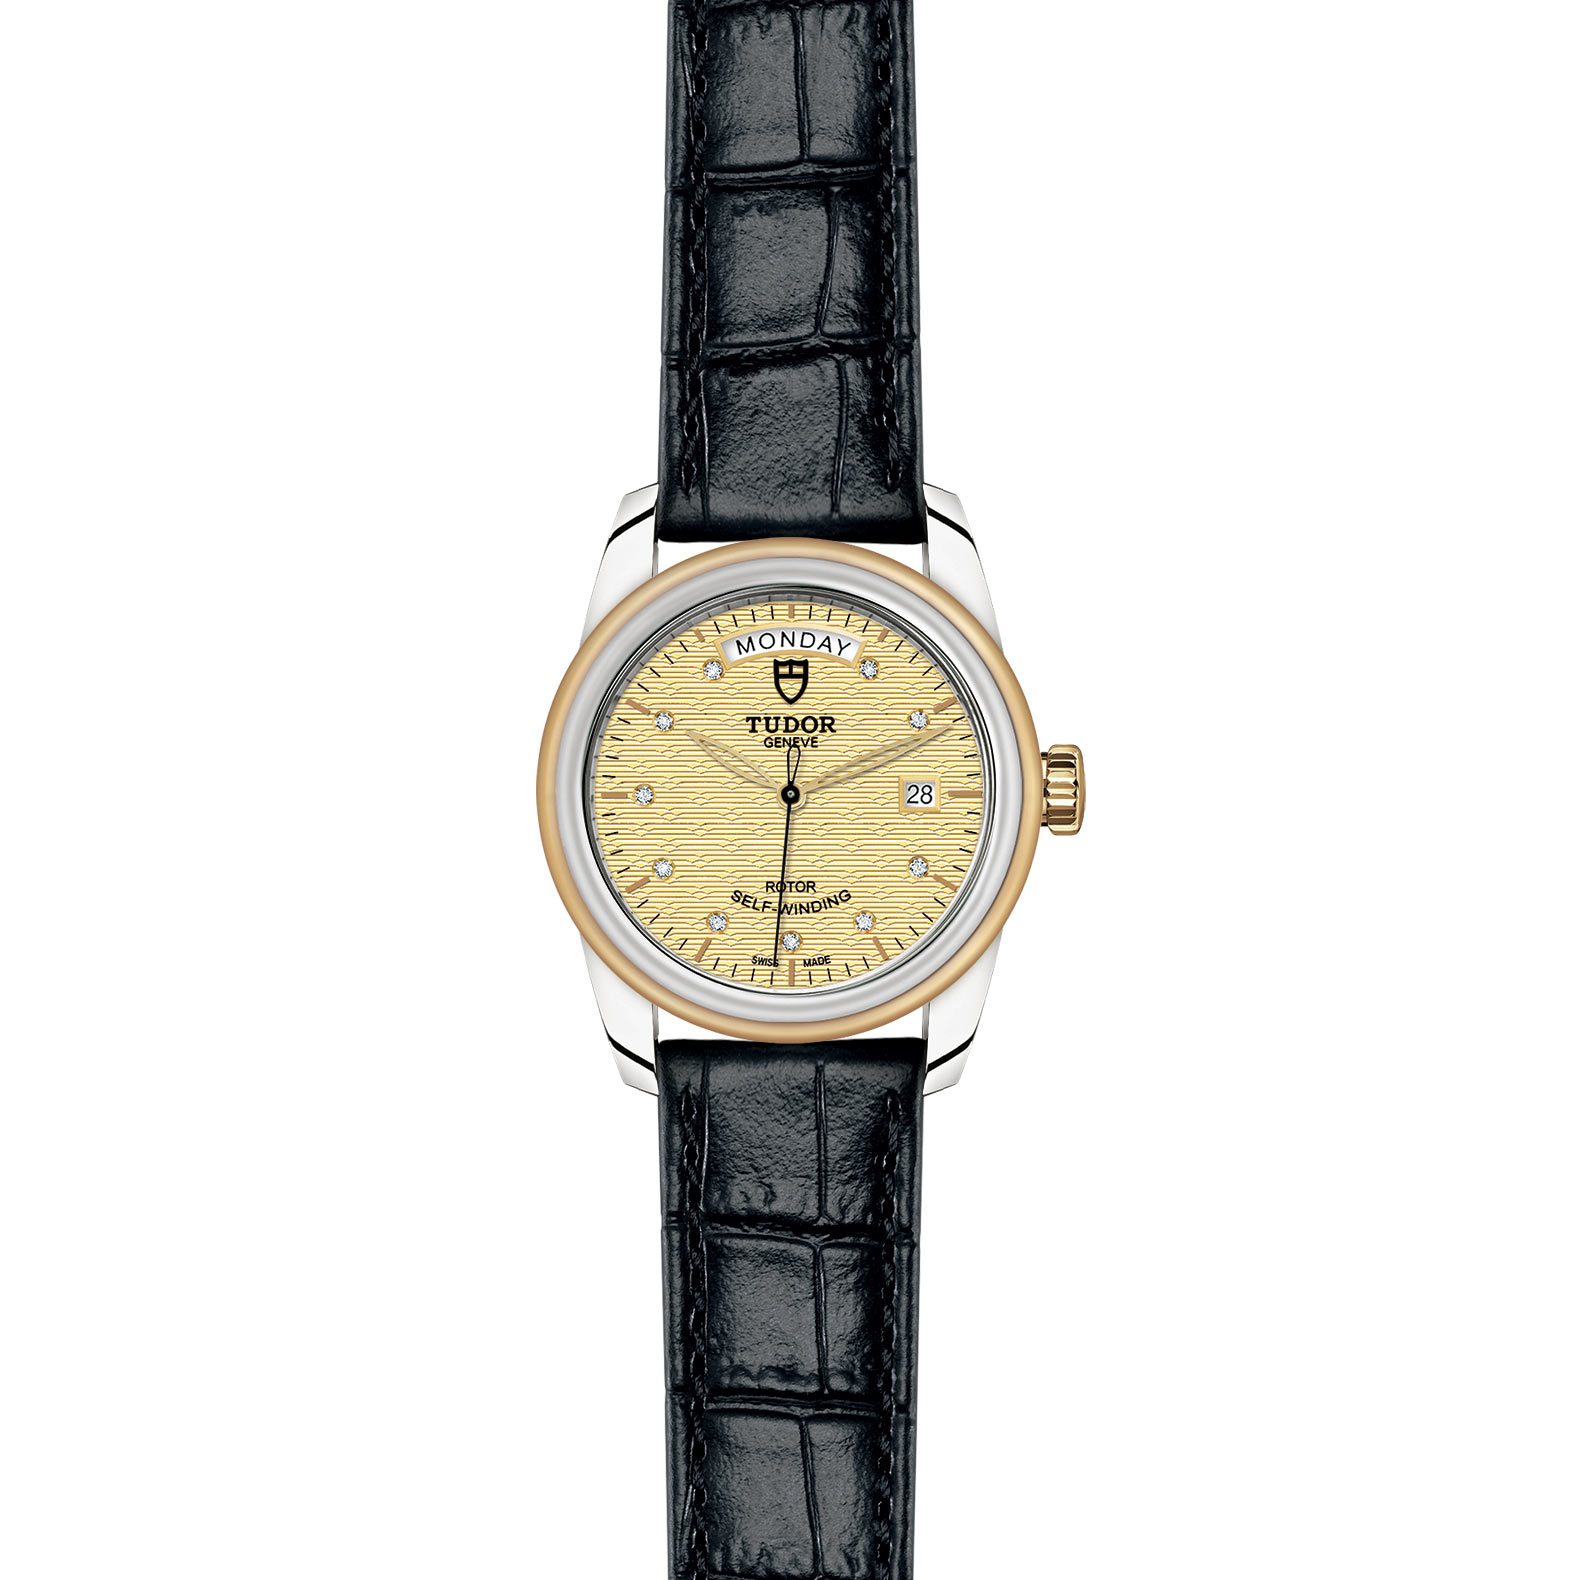 TUDOR Glamour Date Day M56003 0029 Frontfacing